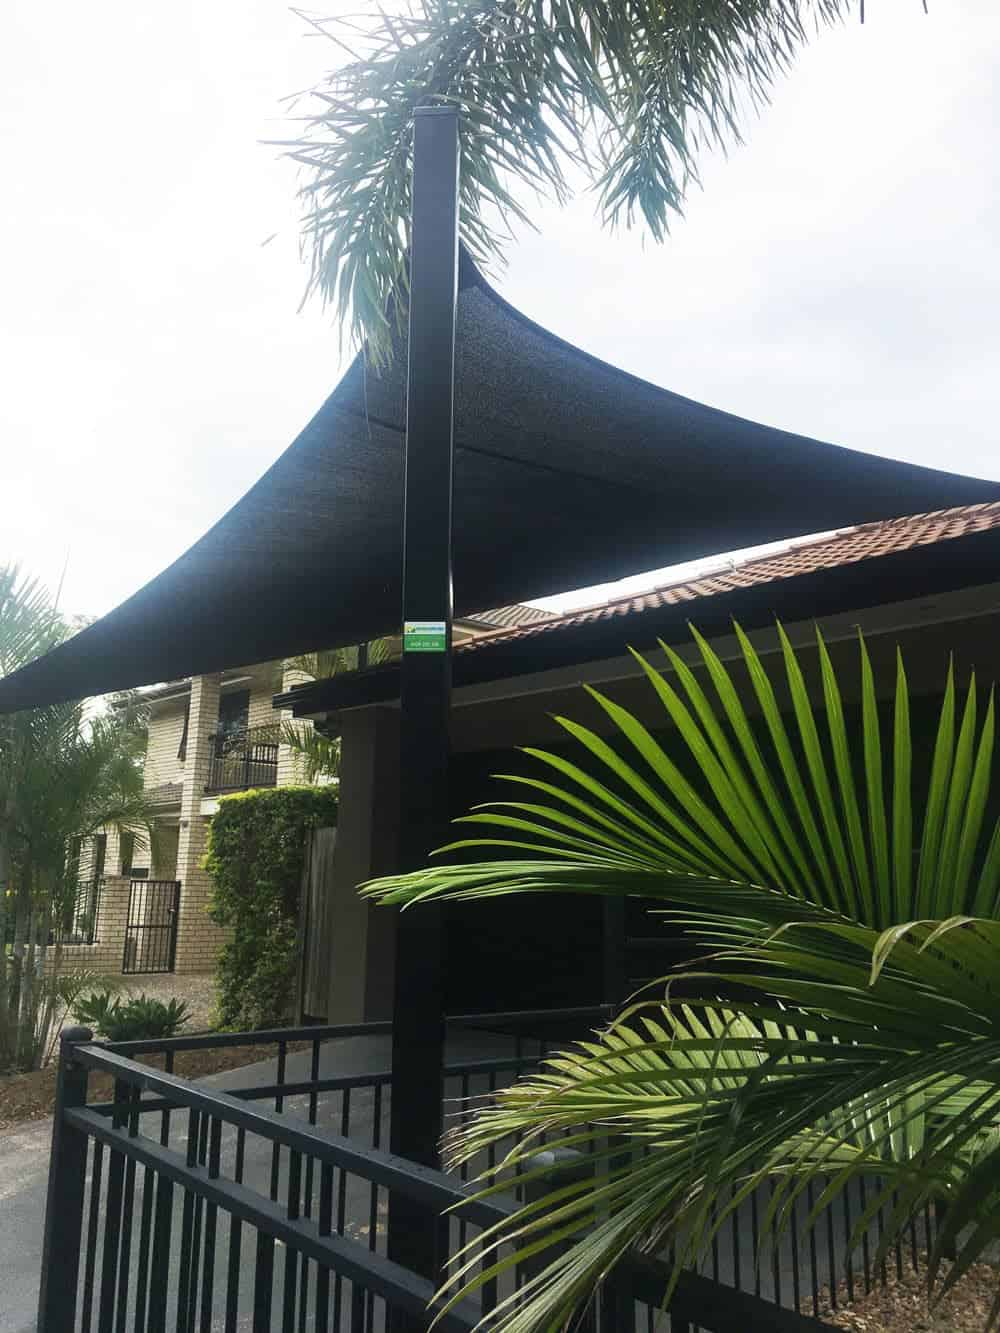 Brisbane-Shade Sails-Parkinson-Superior Shade Sails installed 1 x 5 point shade in Abshade, black material. 2 x galvanised steel posts powder-coated black.